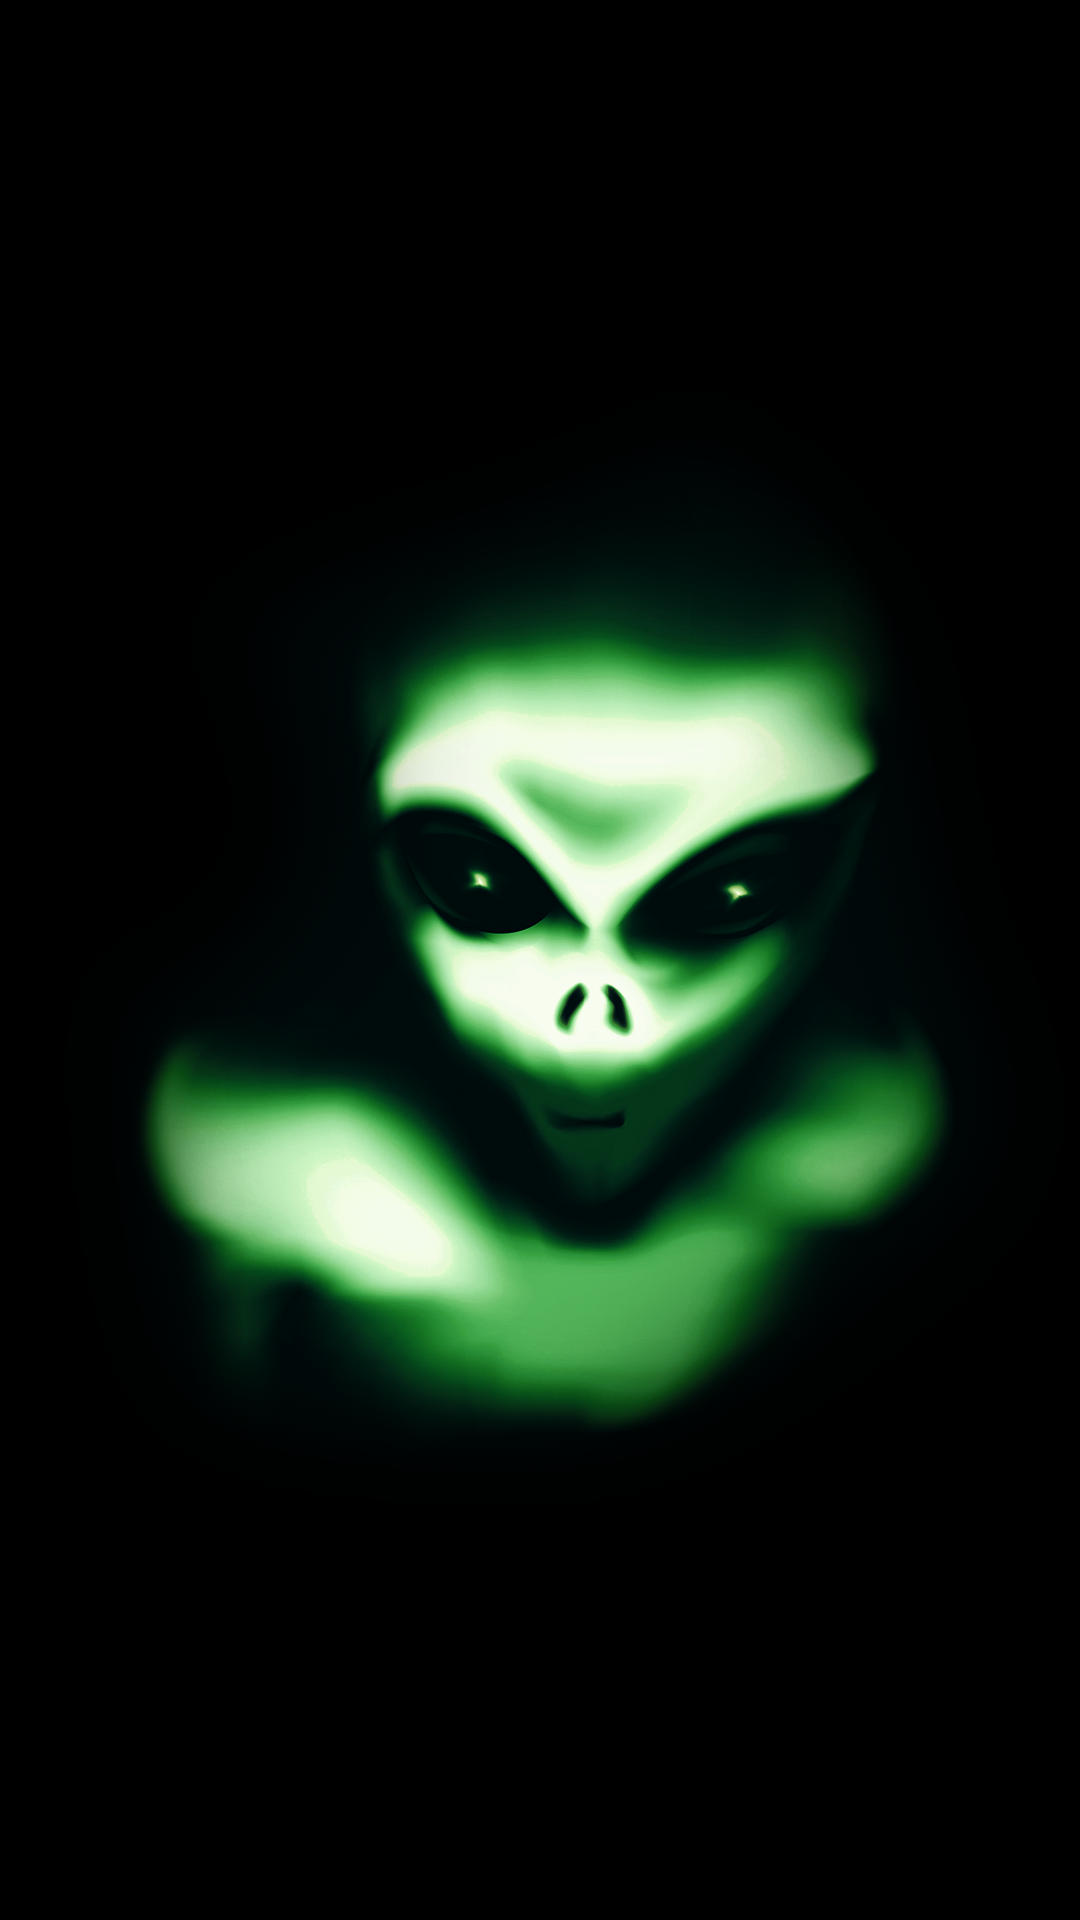 free hd green alien iphone wallpaper for download 0121